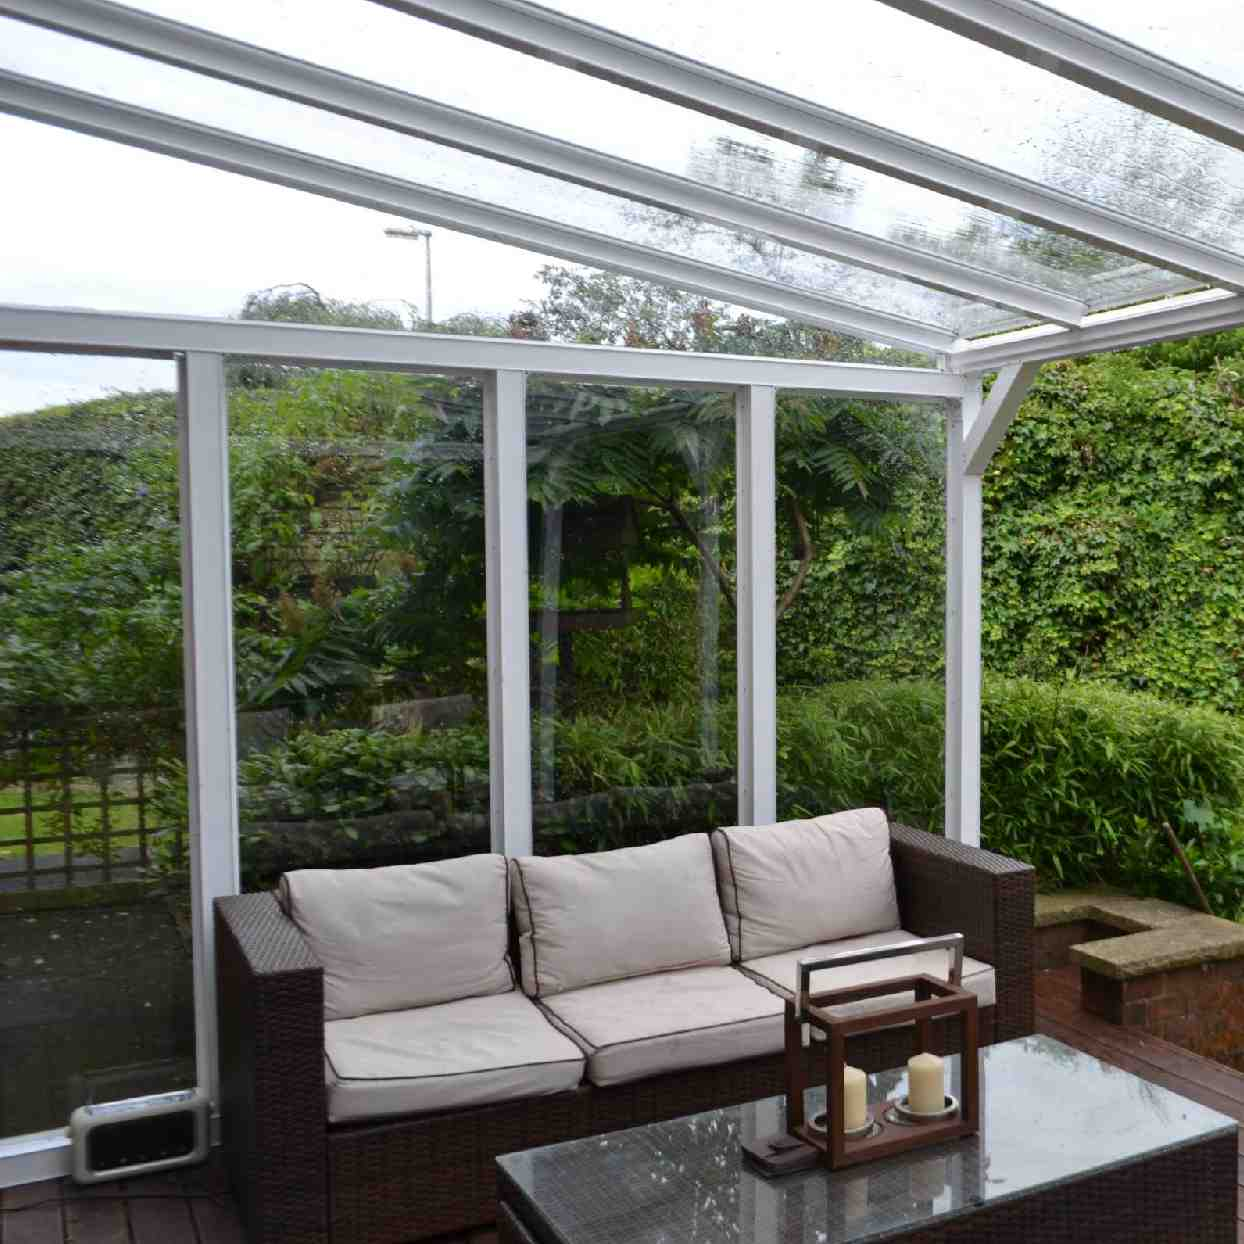 Buy Omega Verandah with 16mm Polycarbonate Glazing - 5.2m (W) x 2.0m (P), (3) Supporting Posts online today